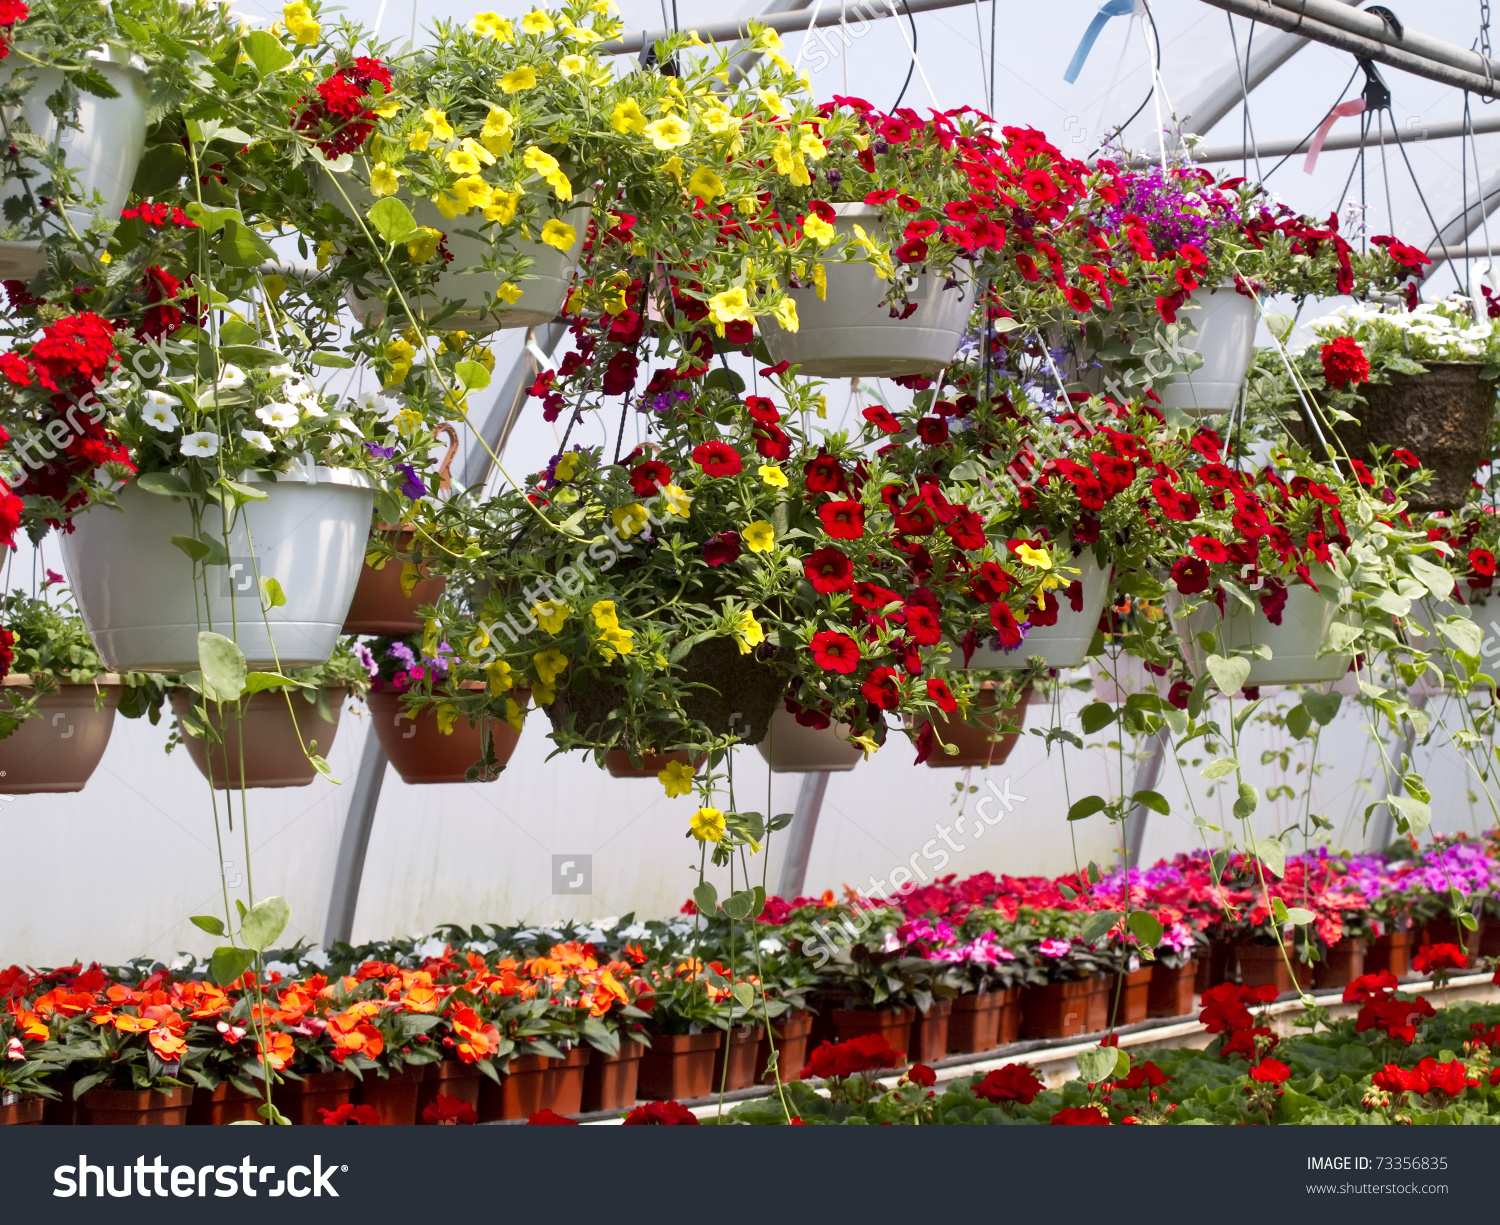 Multicolored Flowers Hanging Baskets Greenhouse Stock Photo.